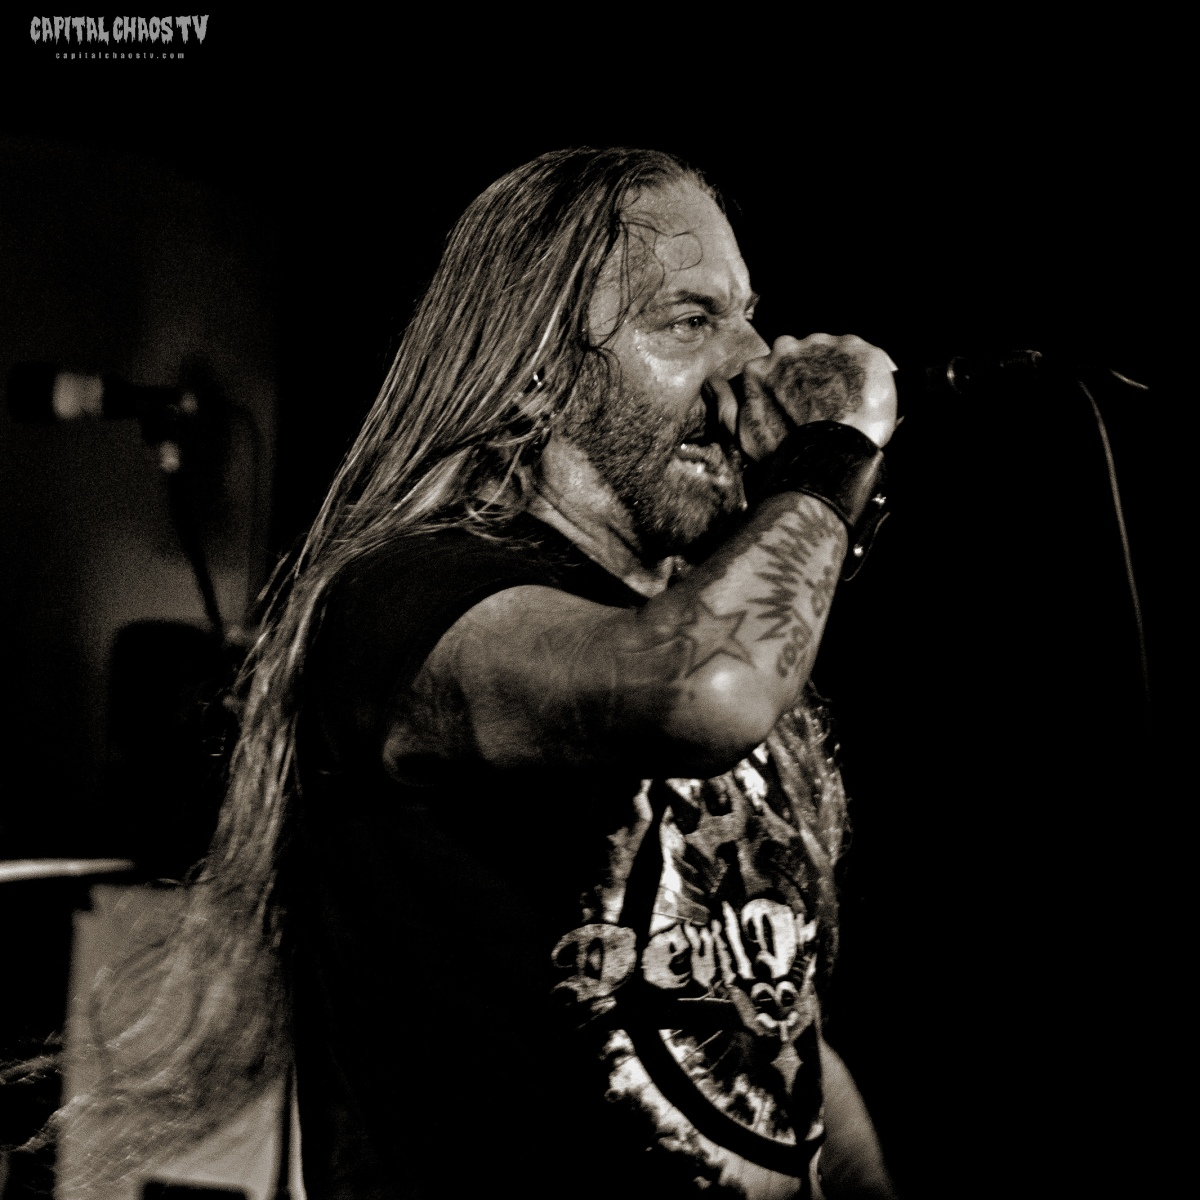 Concert Photo Review: Devildriver at Holy Diver – November 17th, 2018